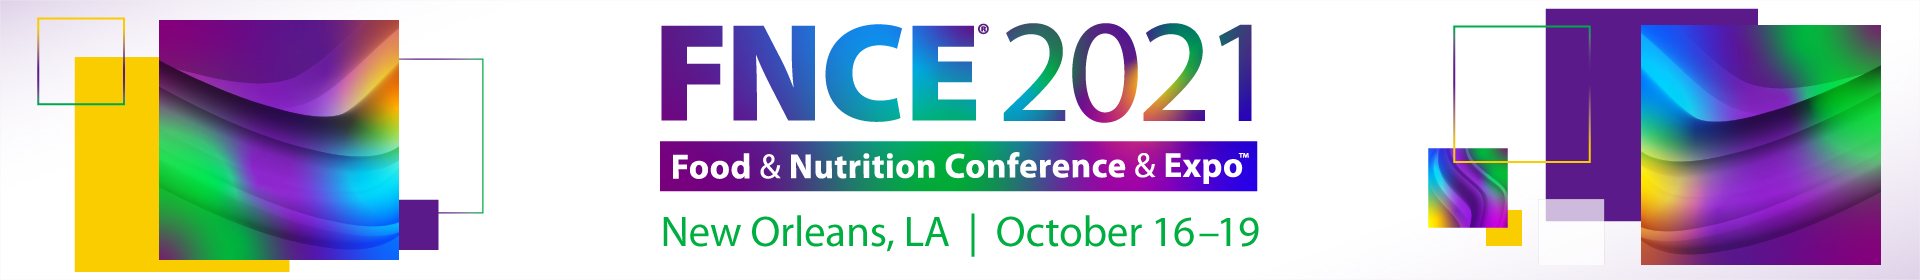 2021 Food & Nutrition Conference & Expo Event Banner